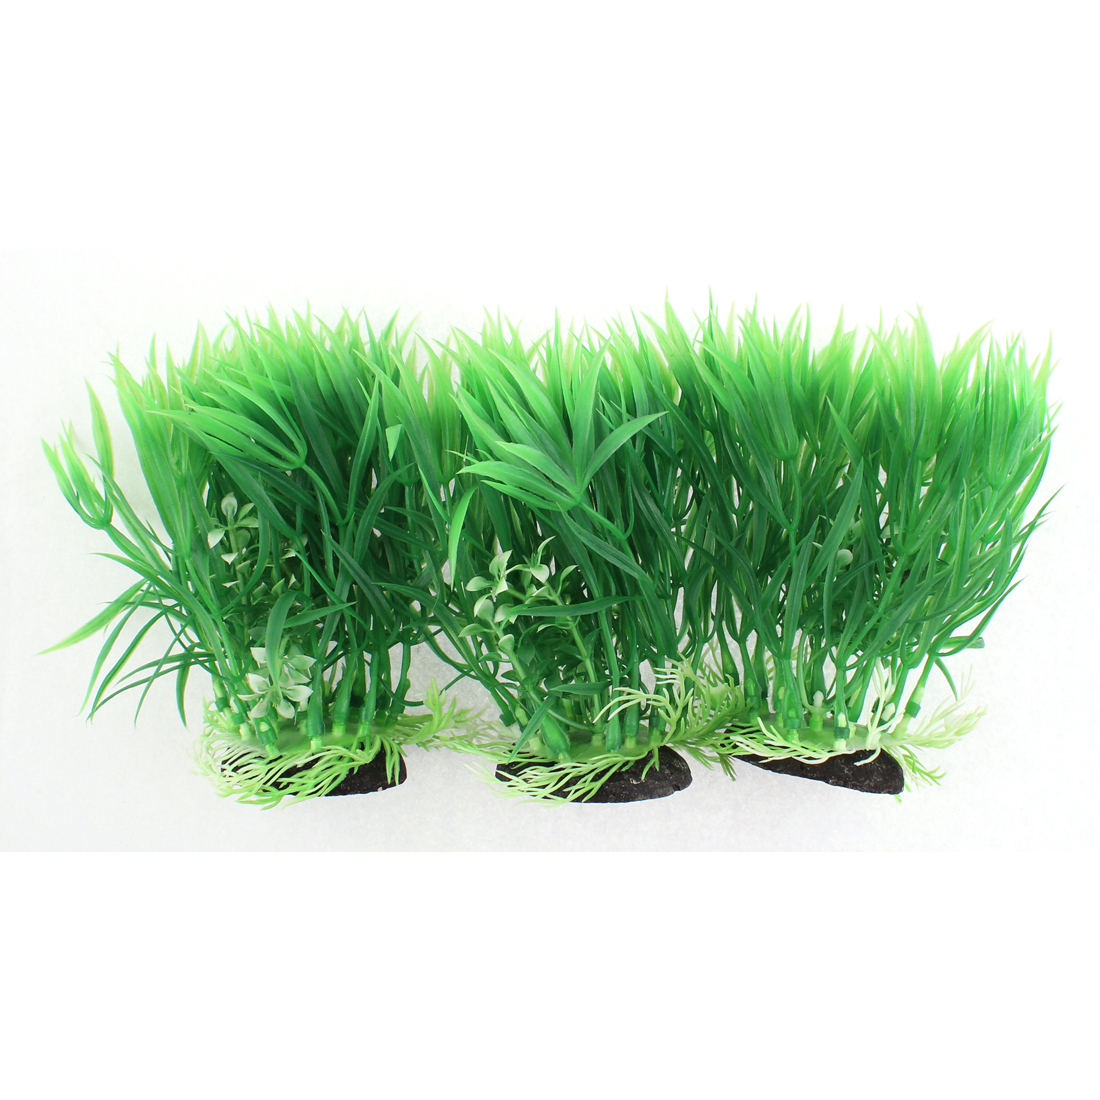 Fish Tank Aquarium Ceramic Base Plastic Imitated Water Plant Grass 14x15cm 3pcs